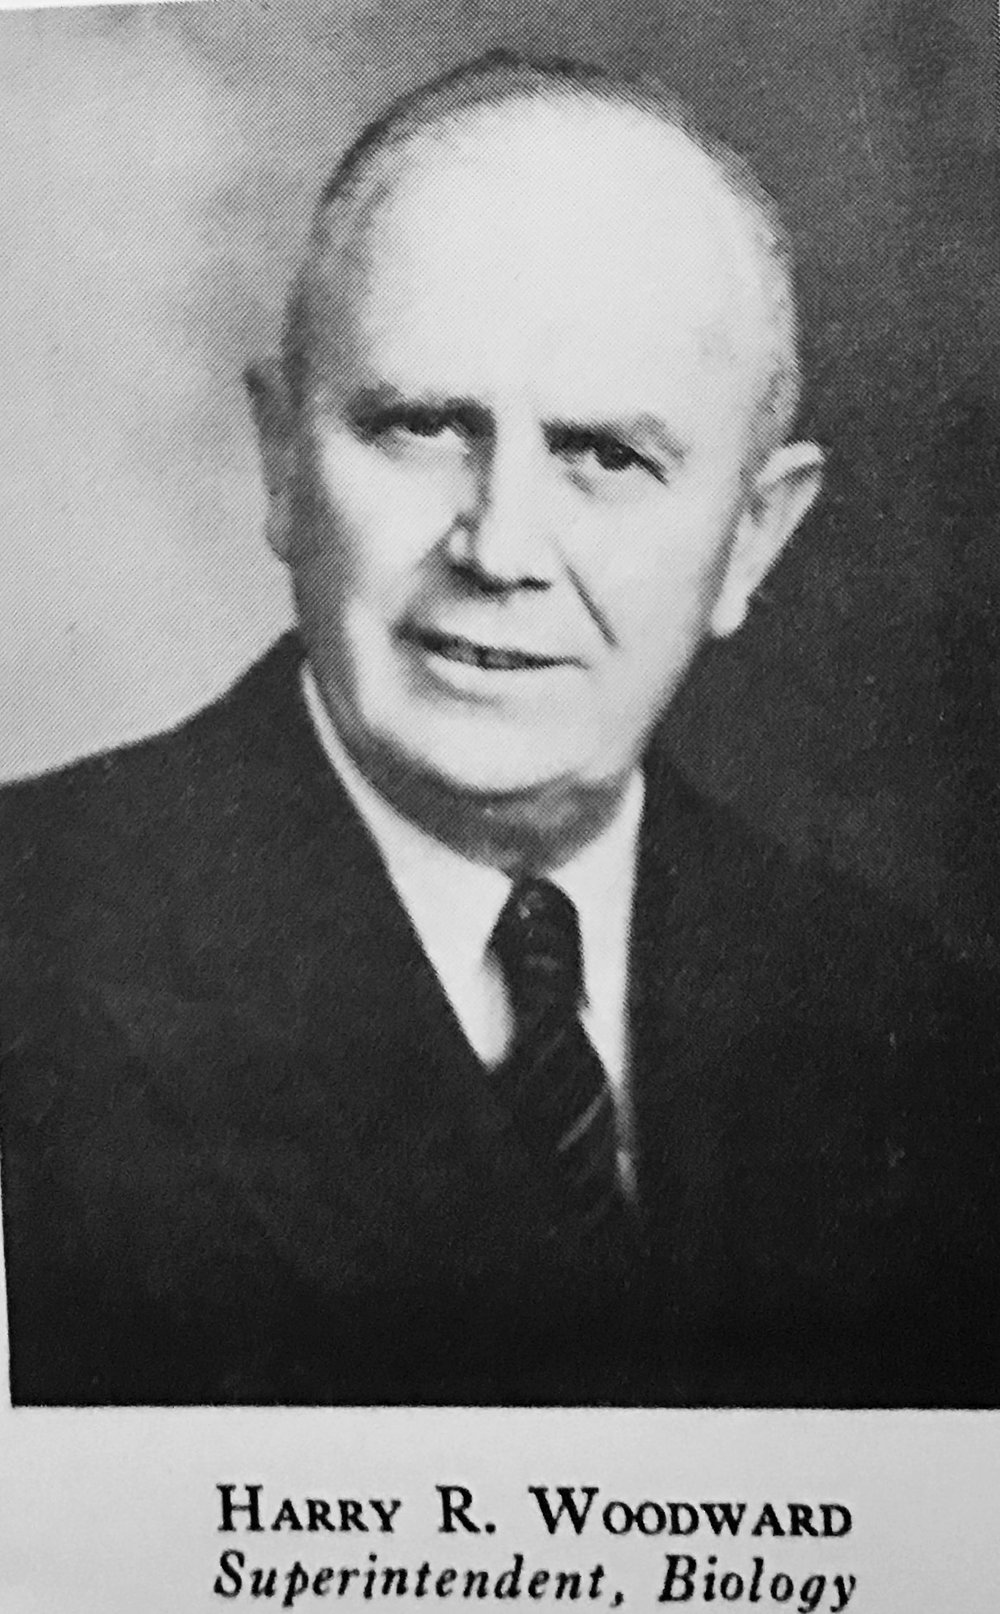 Harry R. Woodward